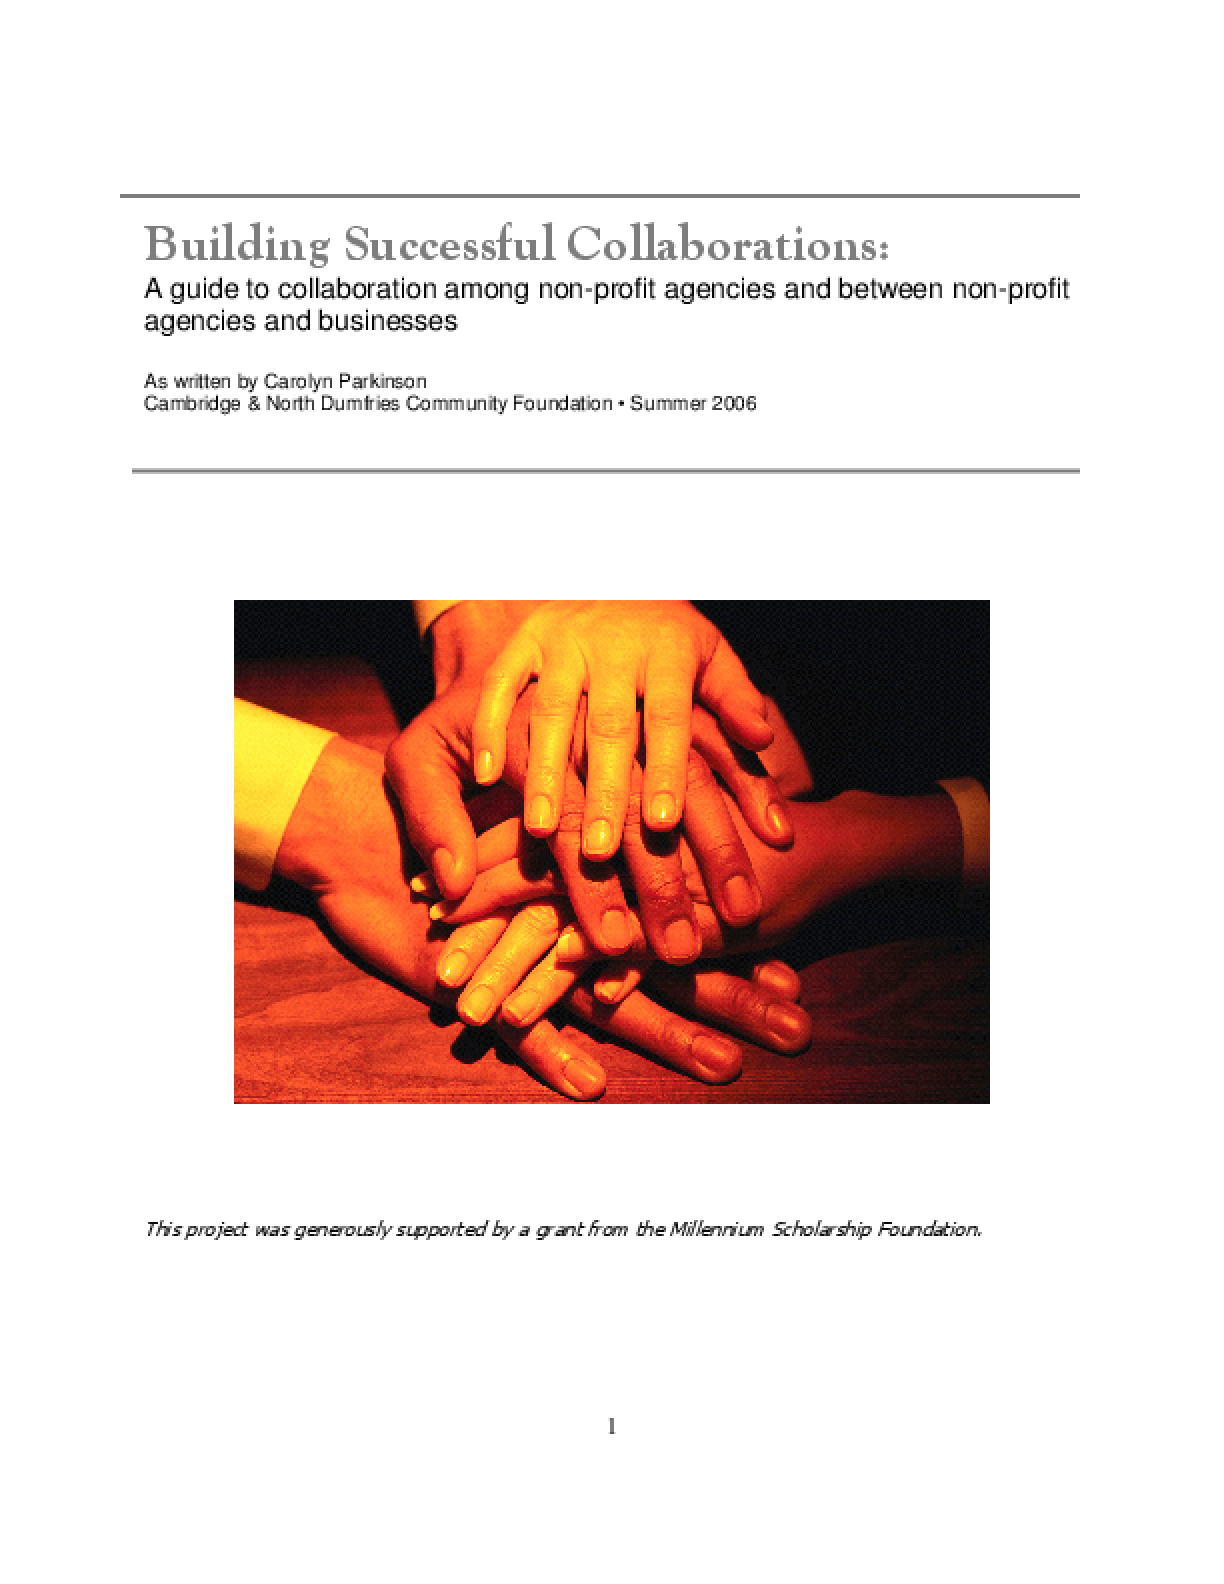 Building Successful Collaborations: A Guide to a Collaboration Among Non-profit Agencies and Between Non-profit Agencies and Businesses